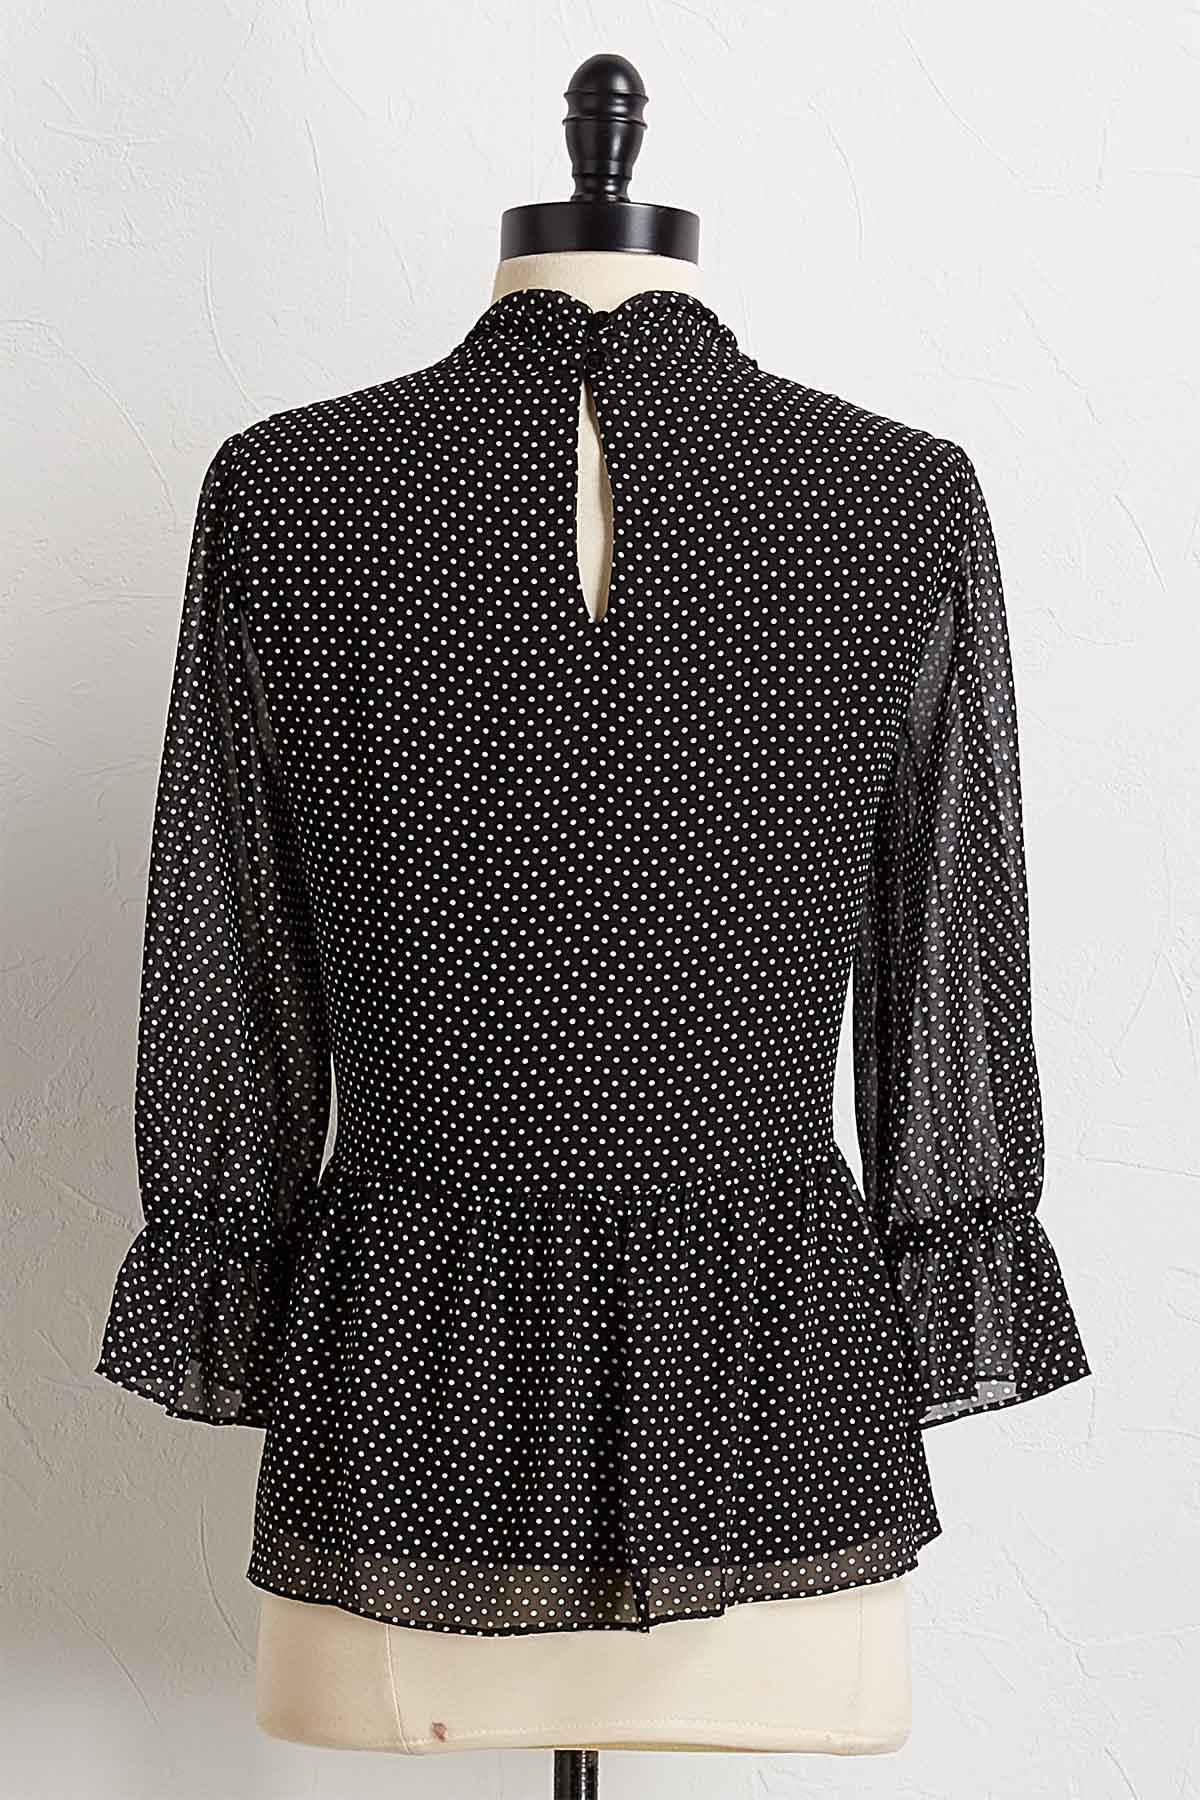 Black And White Dotted Top